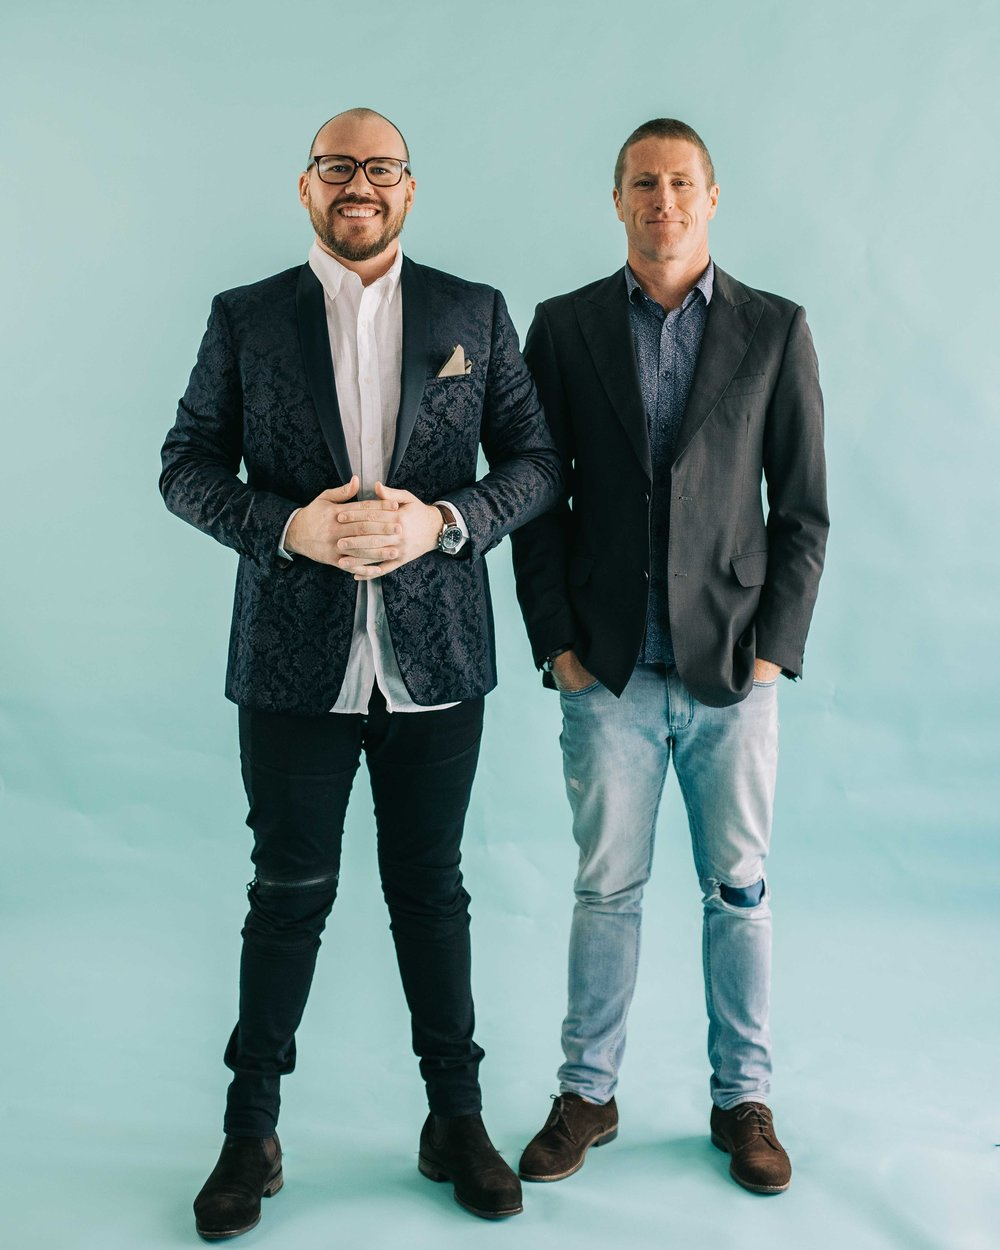 the podcast - Australia's number 1 money podcast for millennials and their money. Bringing money help to millennials like no other, it's like Hamish and Andy for your finances (funny and only occasionally inappropriate, ok)Learn More